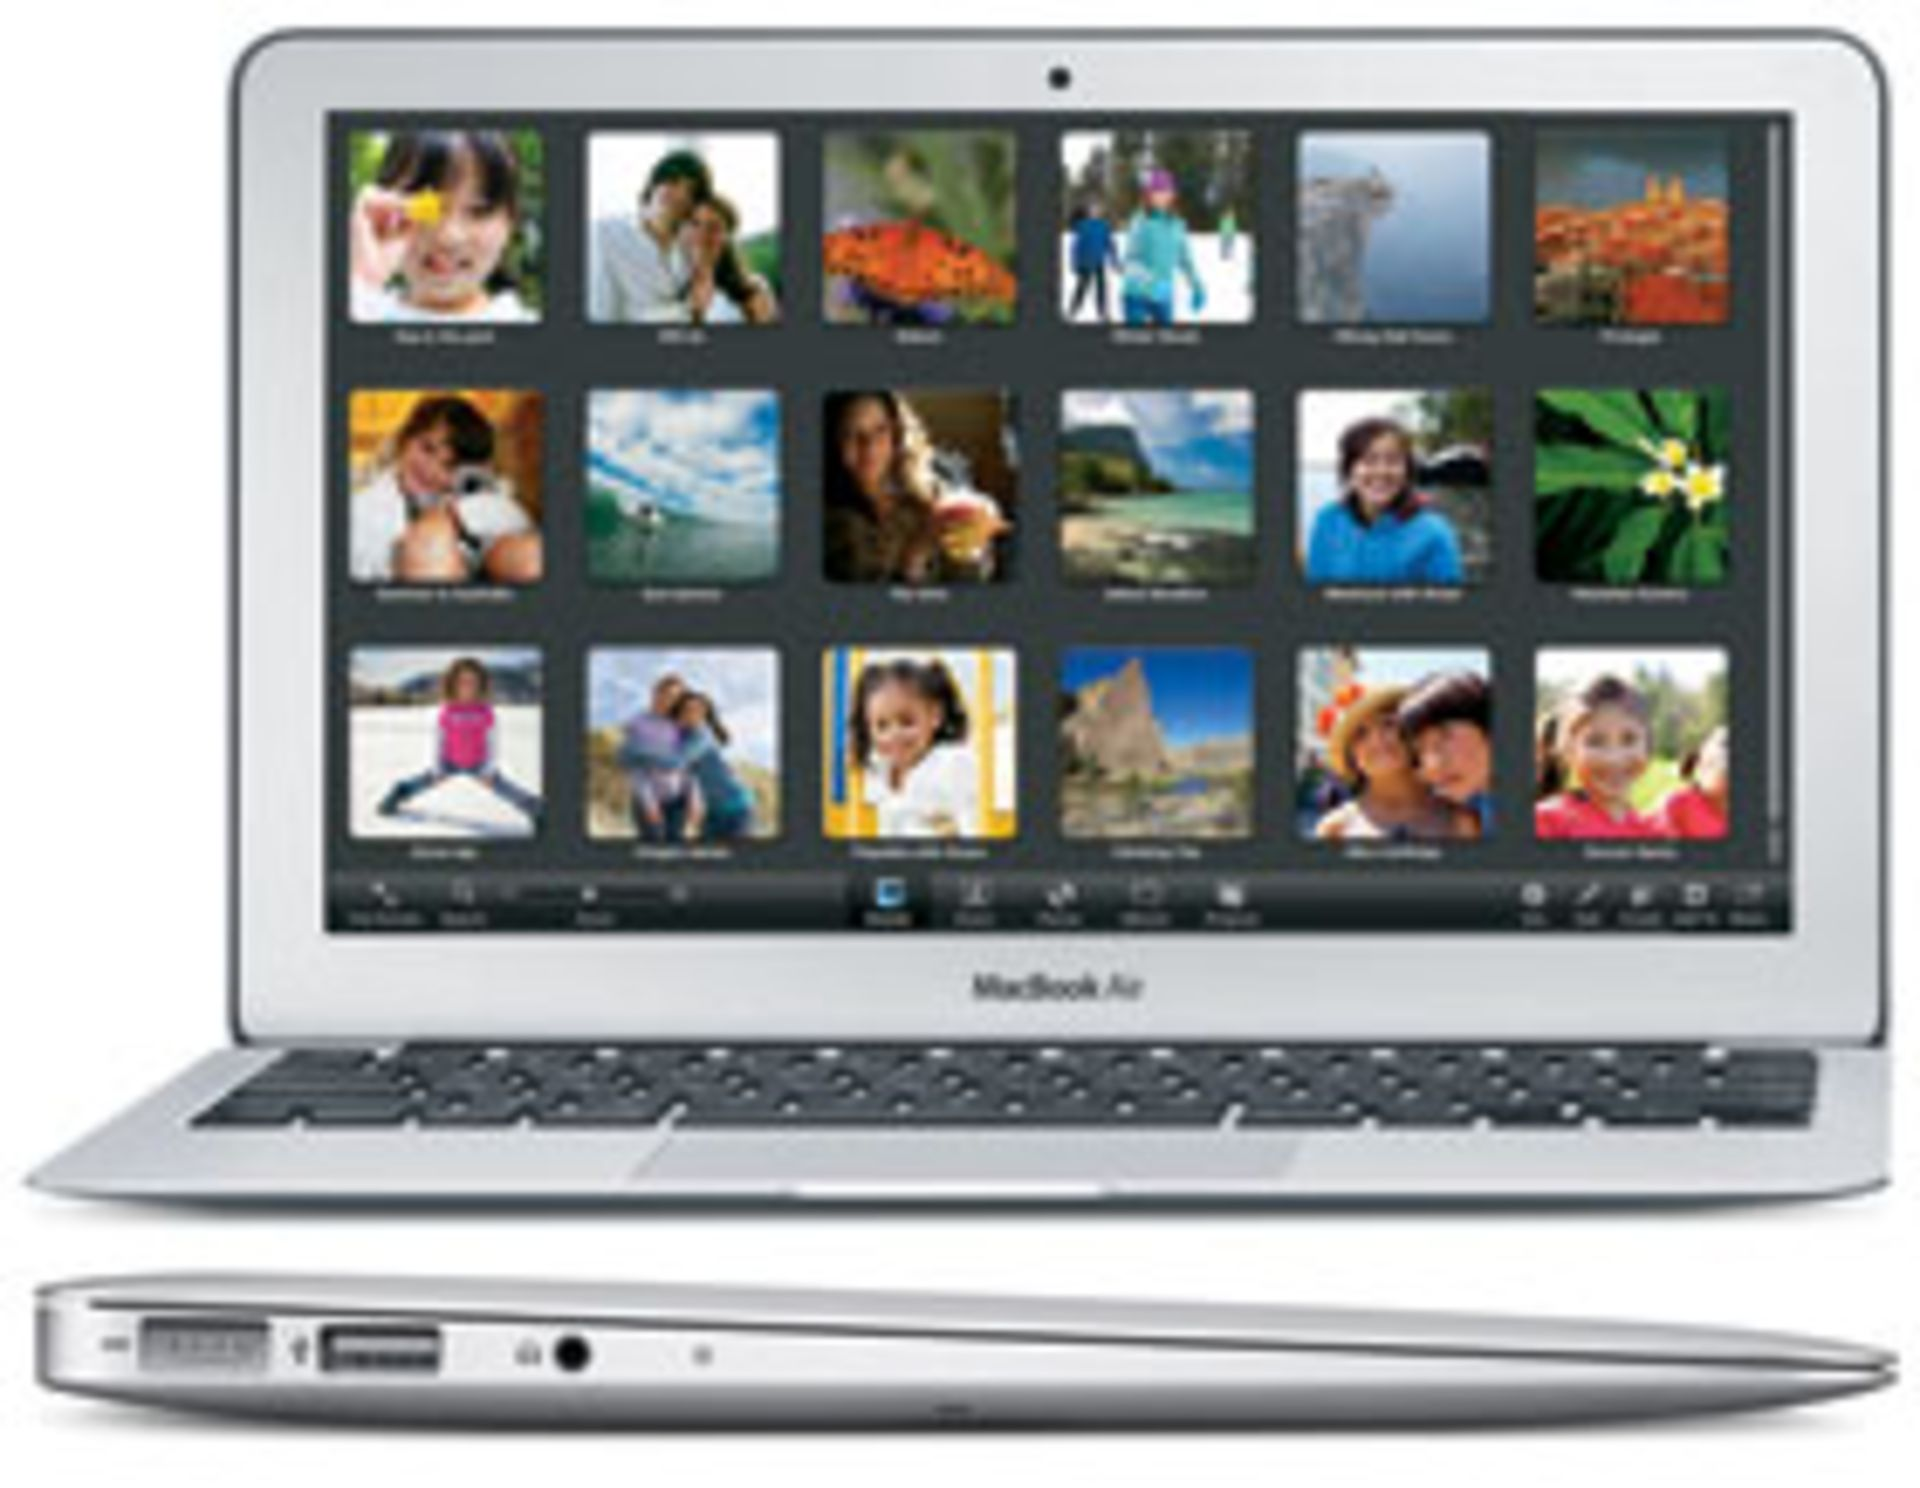 Lot 60042 - V Grade B Macbook Air 11.6 Inch Core 2 Duo - 64GB SSD - A1370 - Available Approx 7 Working Days